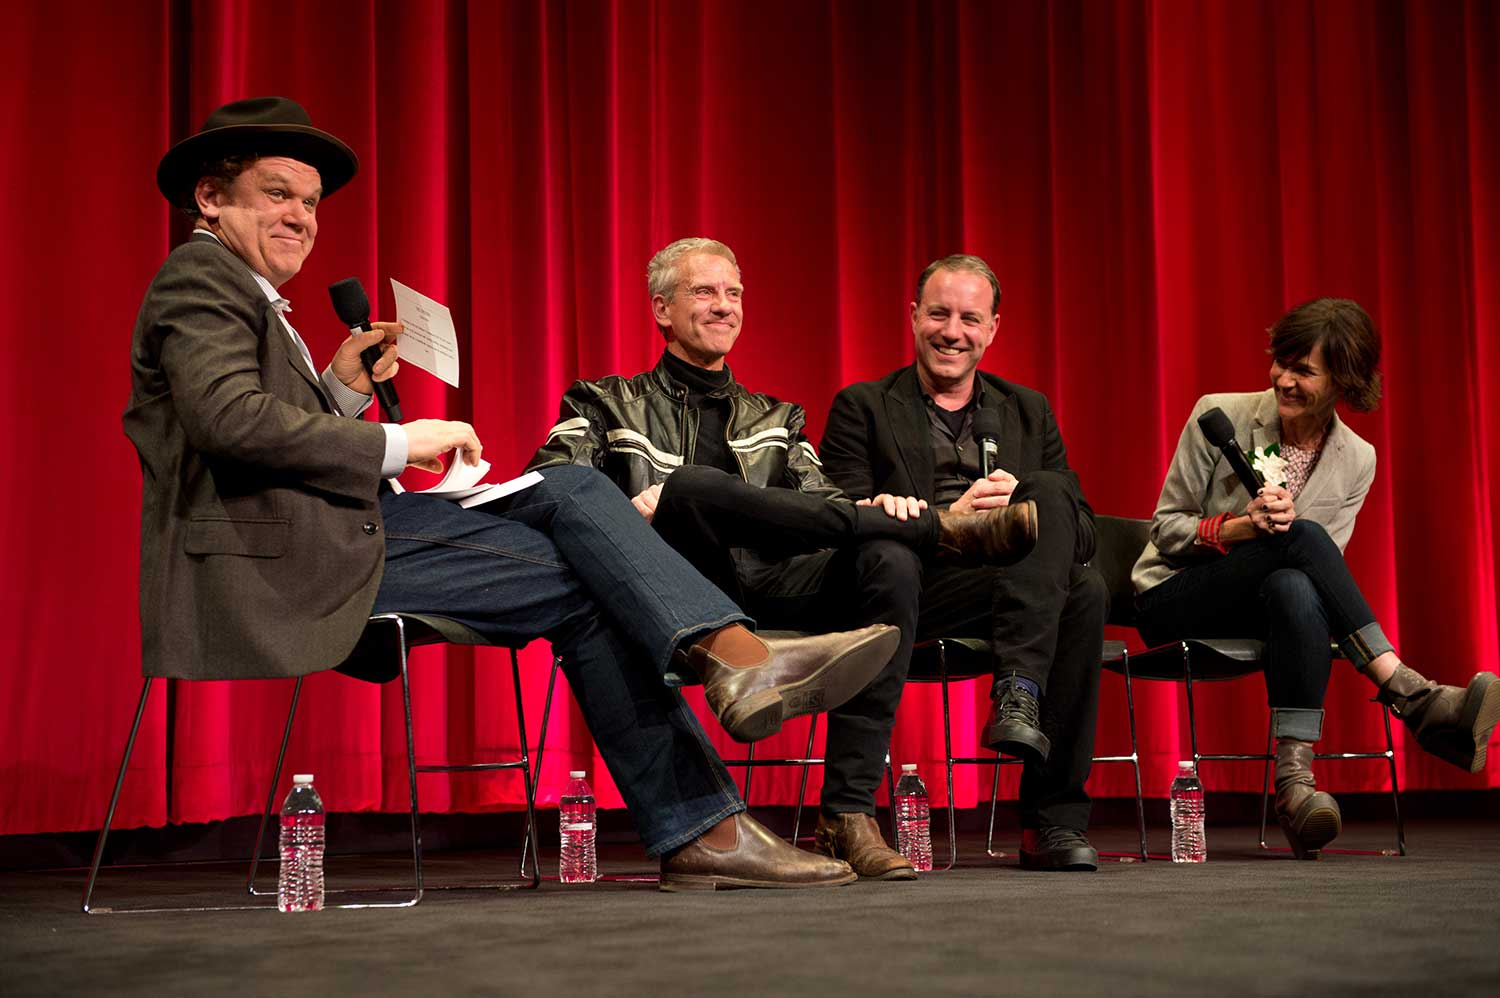 The filmmakers with host John C. Reilly.